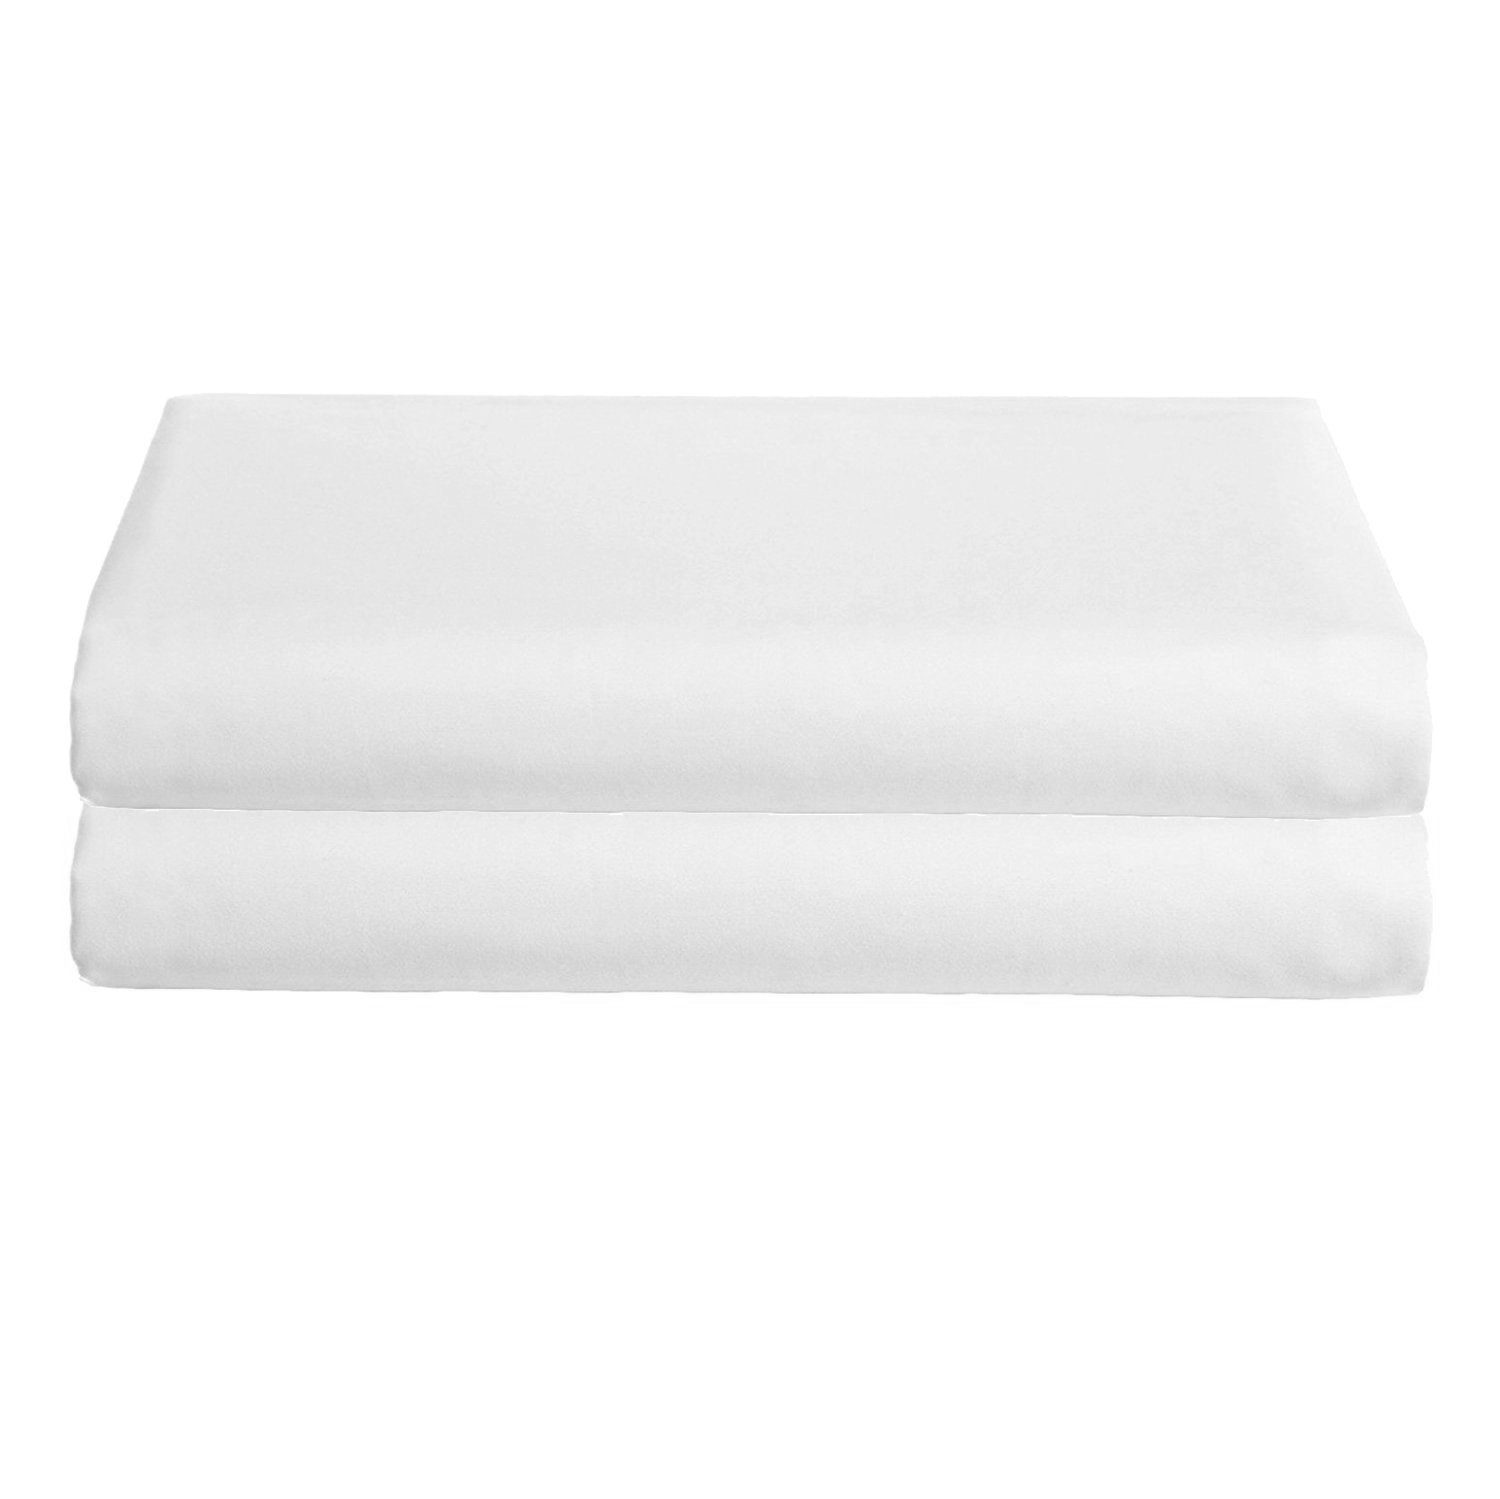 Babydoll Bedding Cotton White Bassinet Sheets Set of Two, 13'' x 29'' by BabyDoll Bedding